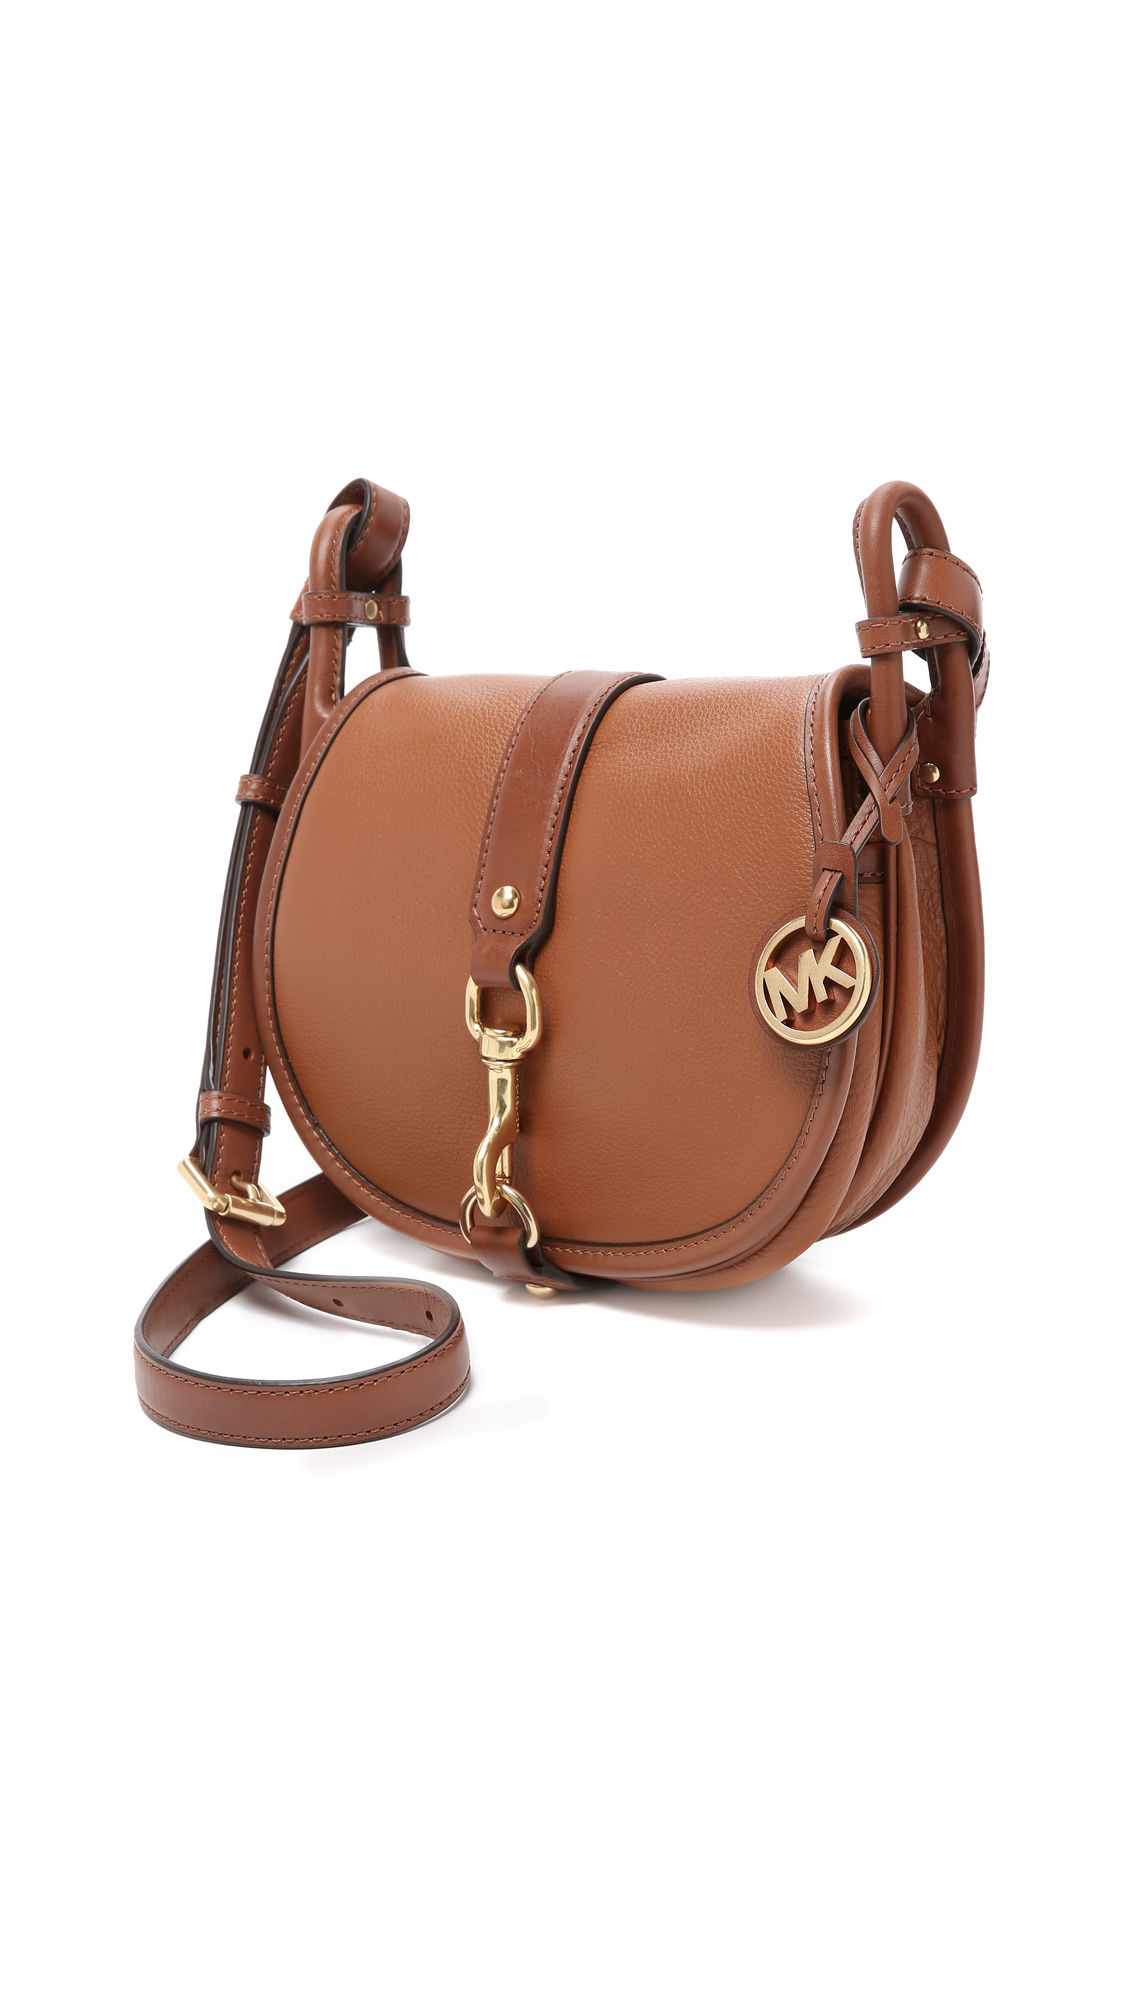 64b068711f Gallery. Previously sold at  Shopbop · Women s Saddle Bags ...